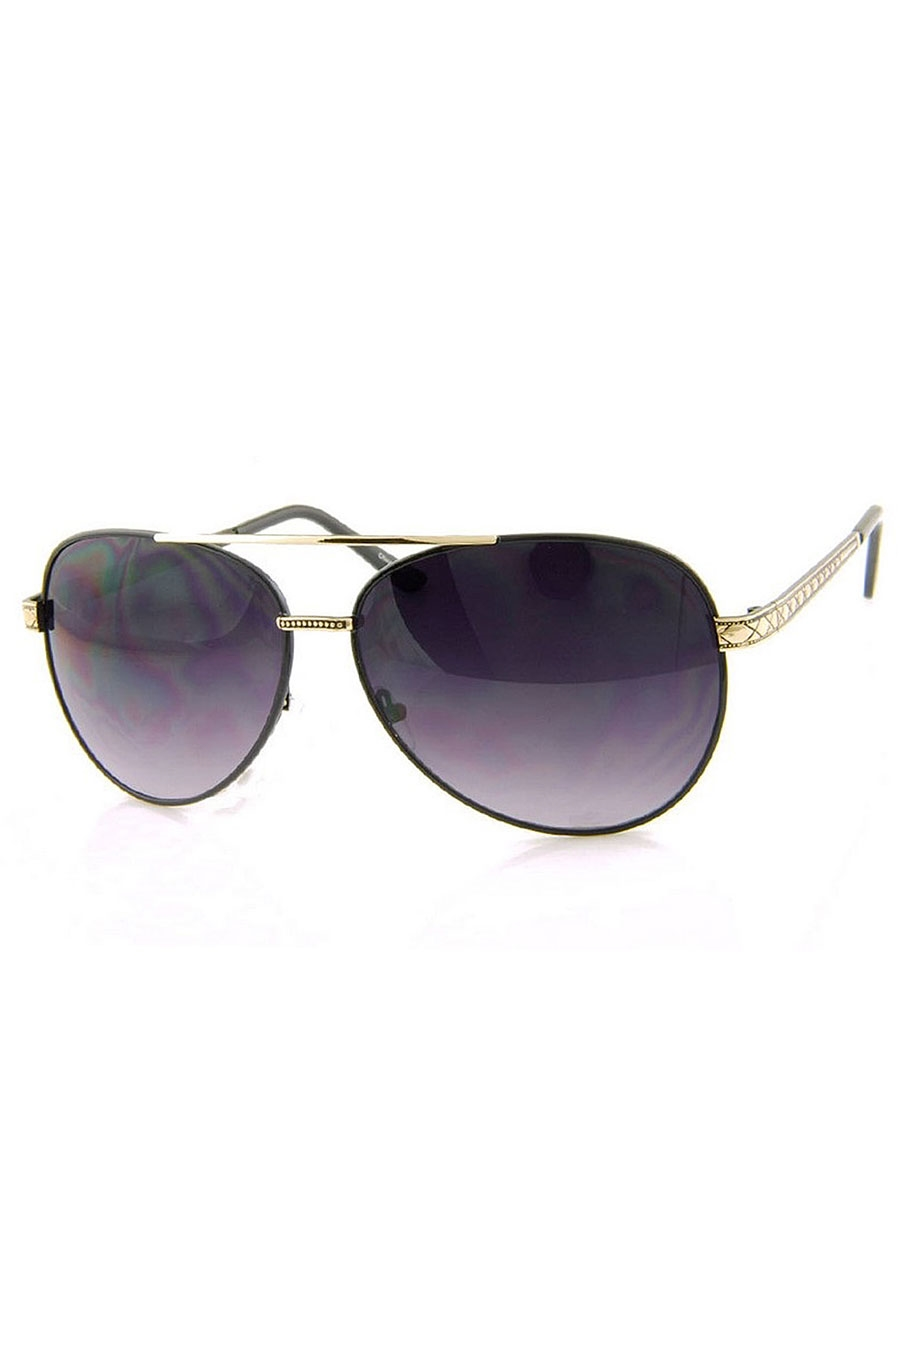 METAL BAR CENTER SUNGLASSES - orangeshine.com